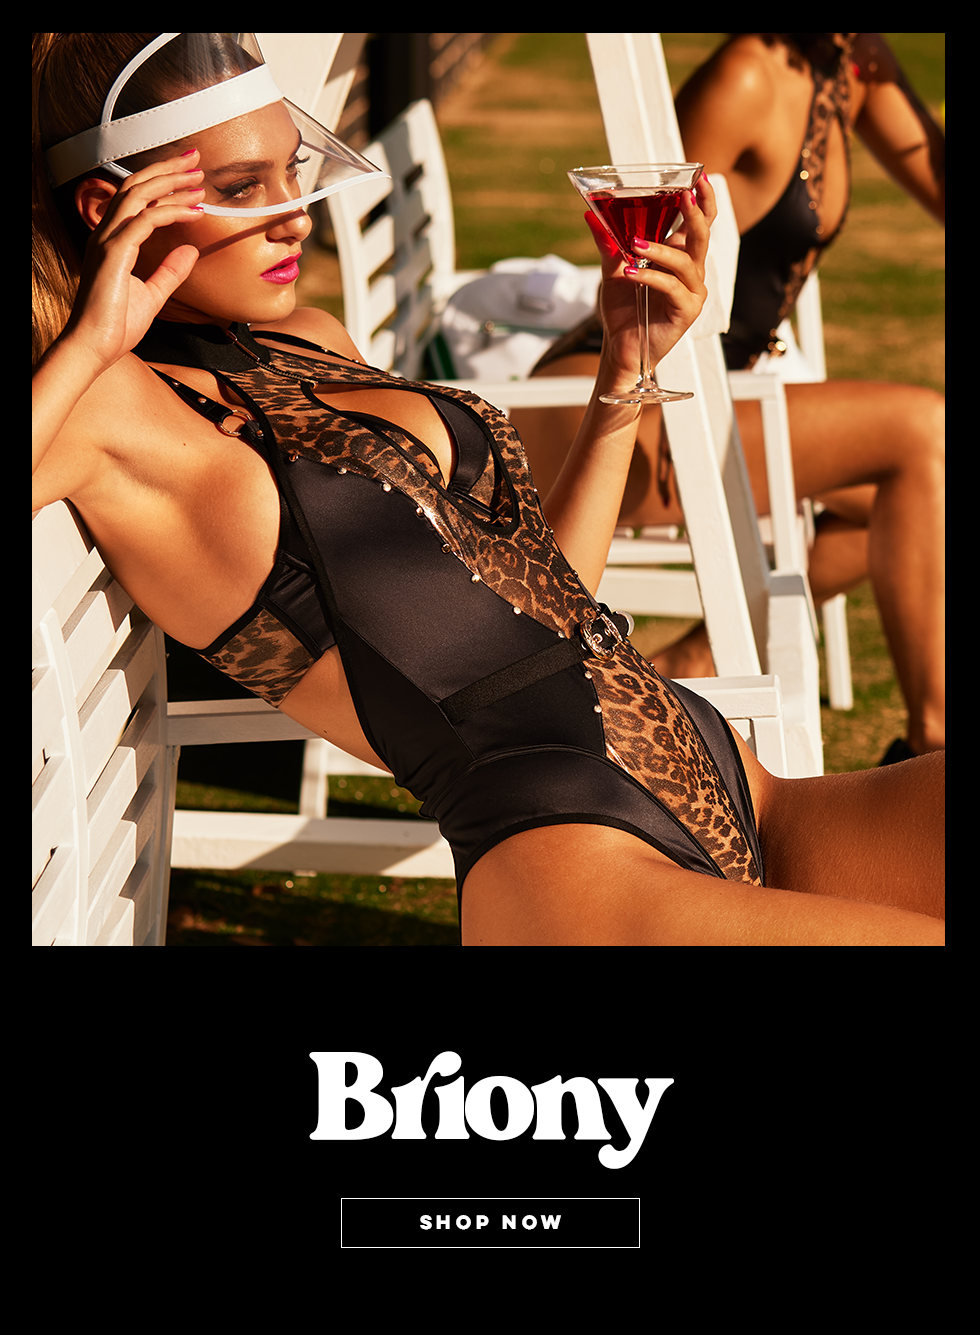 Shop luxury Honey Birdette lingerie online. From carefully detailed bras, suspenders & briefs to high-end toys for the bedroom. Afterpay & Free shipping over $50.